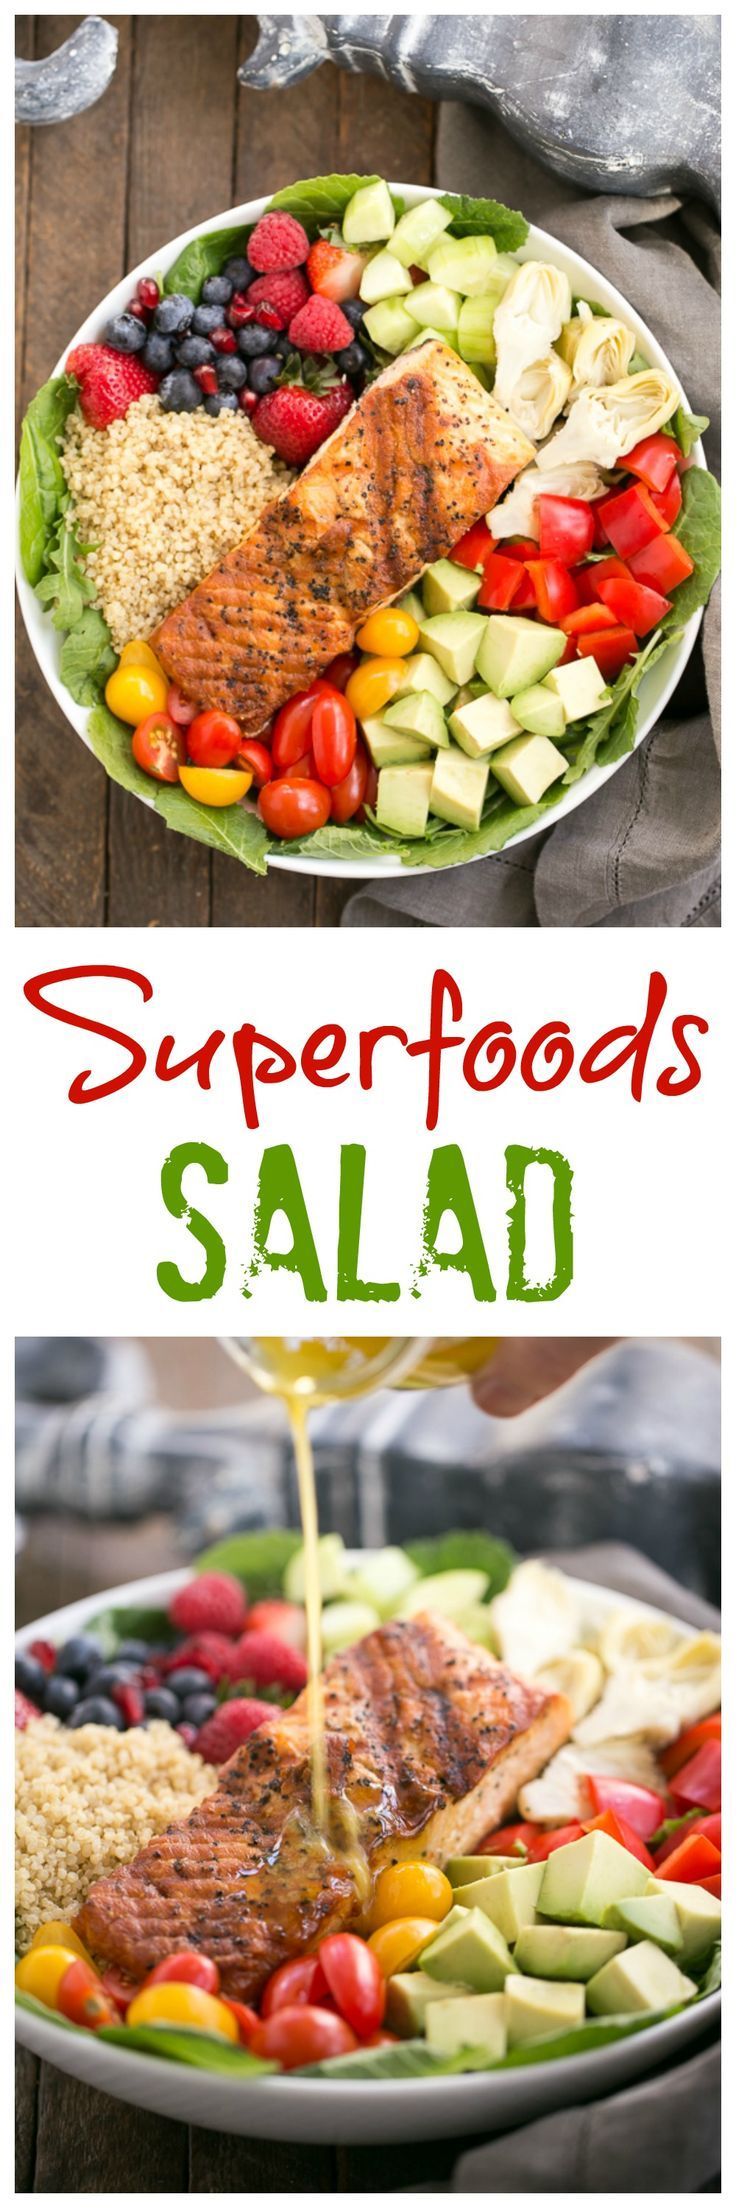 Superfoods Salad | An adaptable green salad filled with nutrient dense super foods @lizzydo